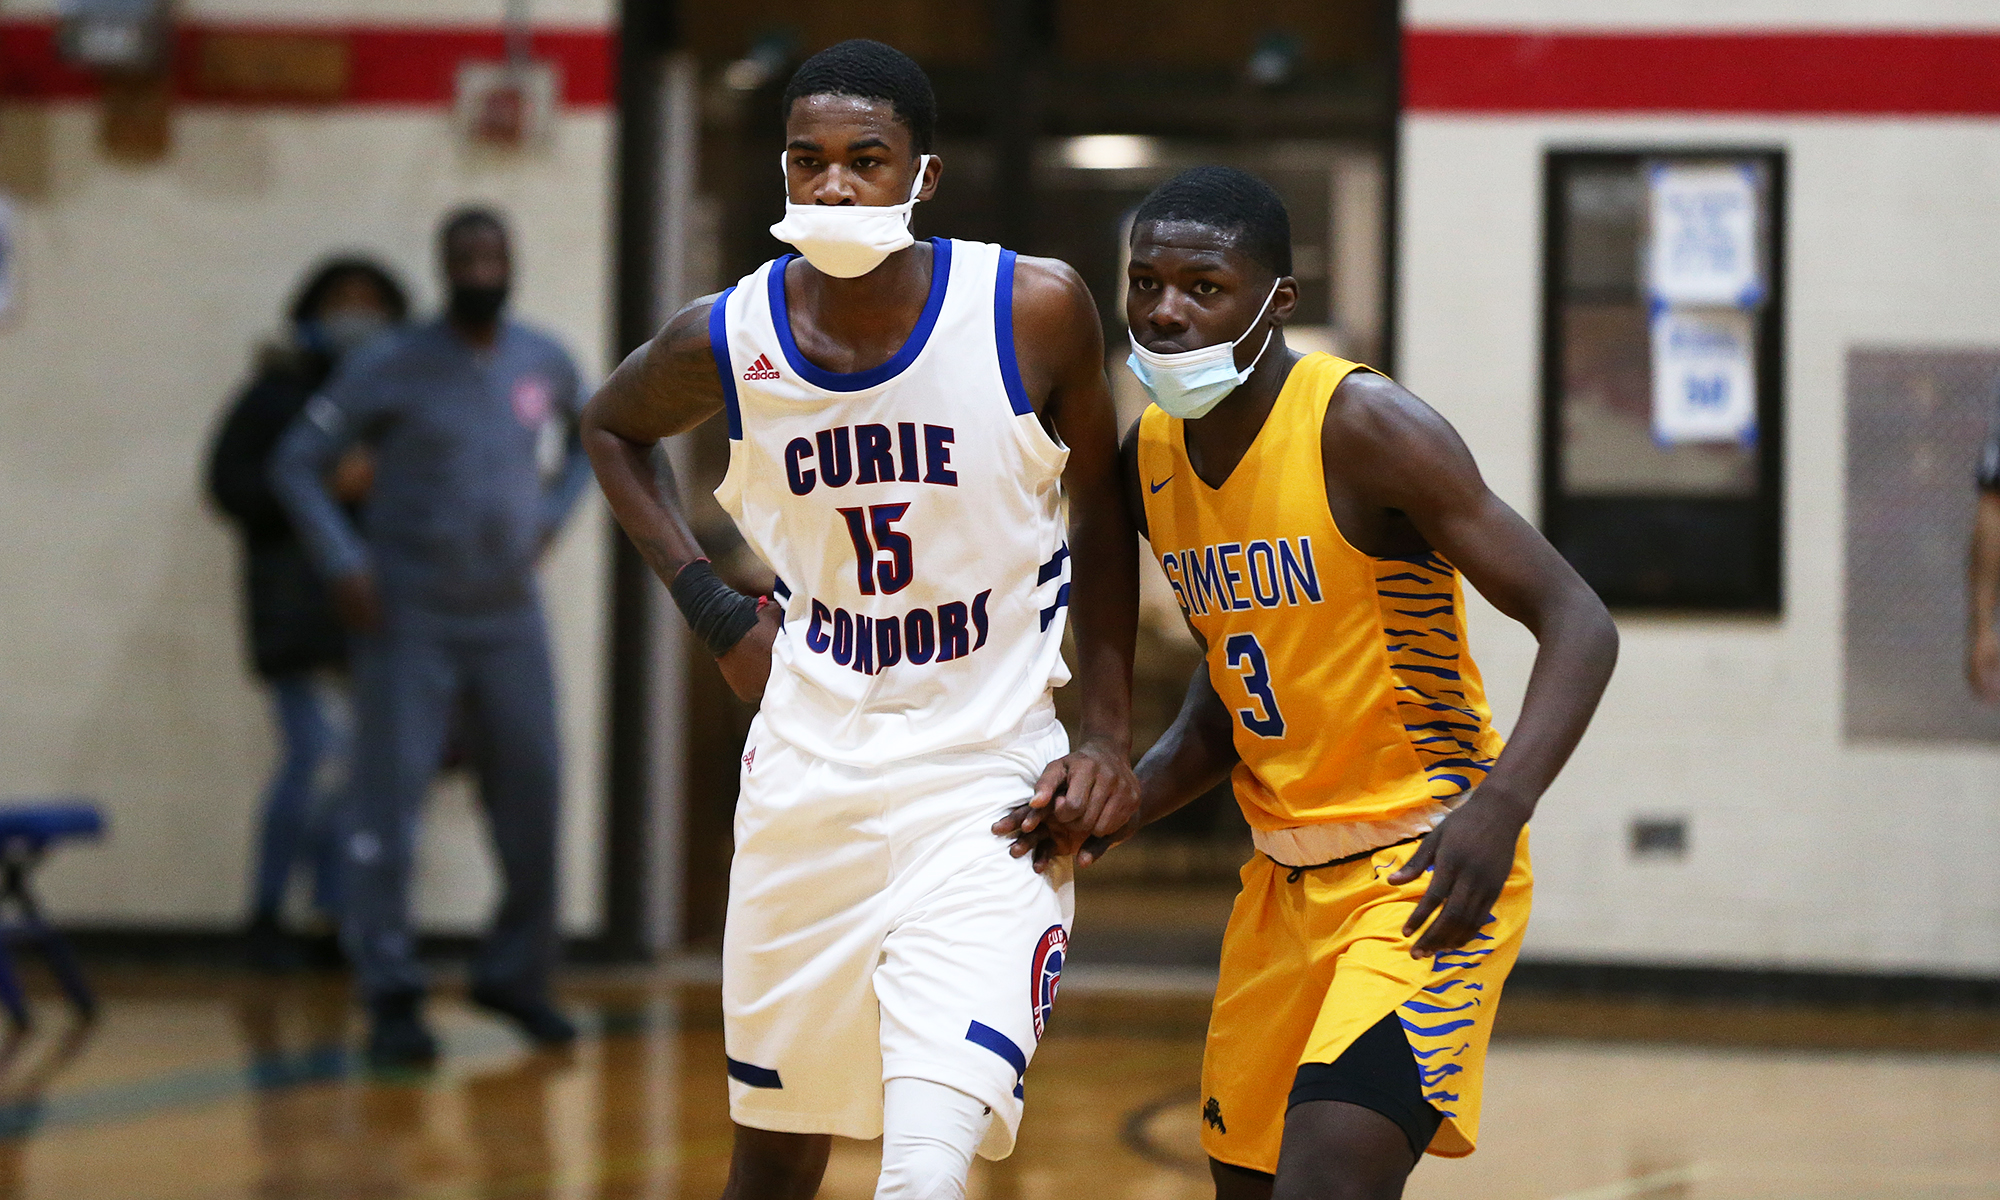 Simeon's Ahamad Bynum (3) and Curie's Phillip Berryhill (15) get ready for an inbounds play.